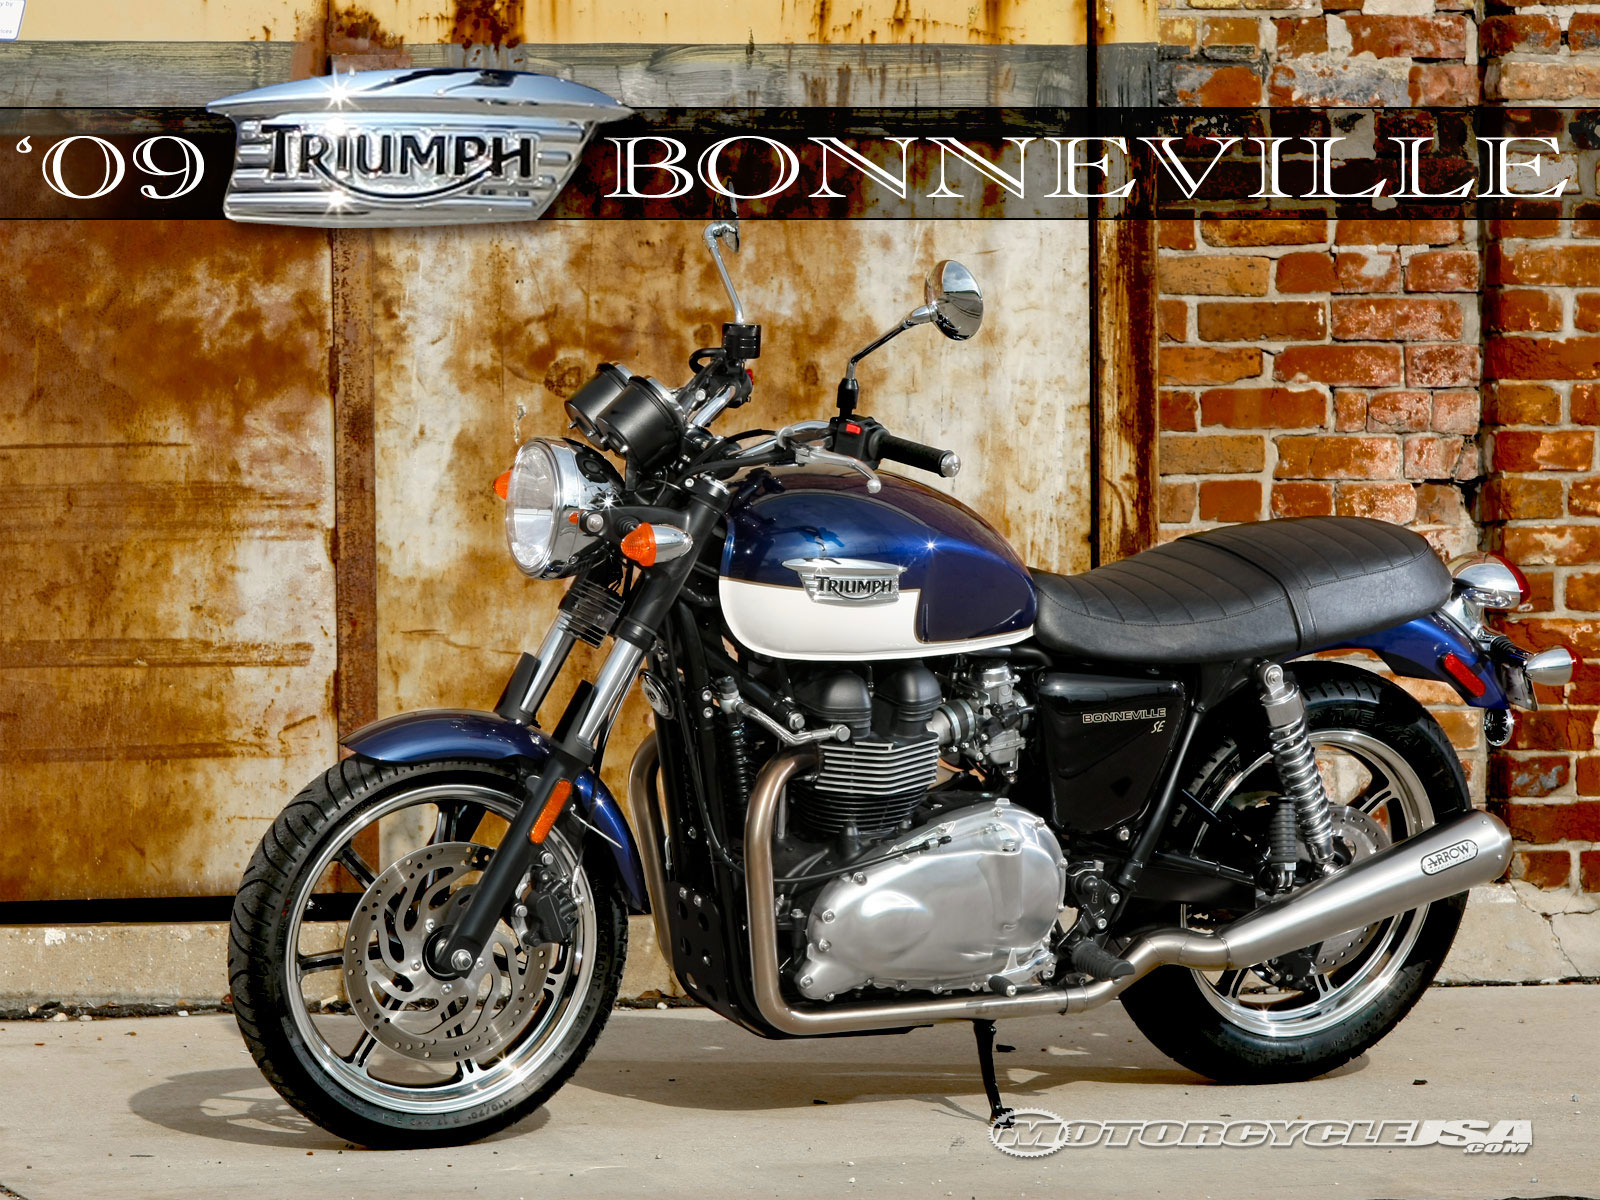 Triumph models photo - 1